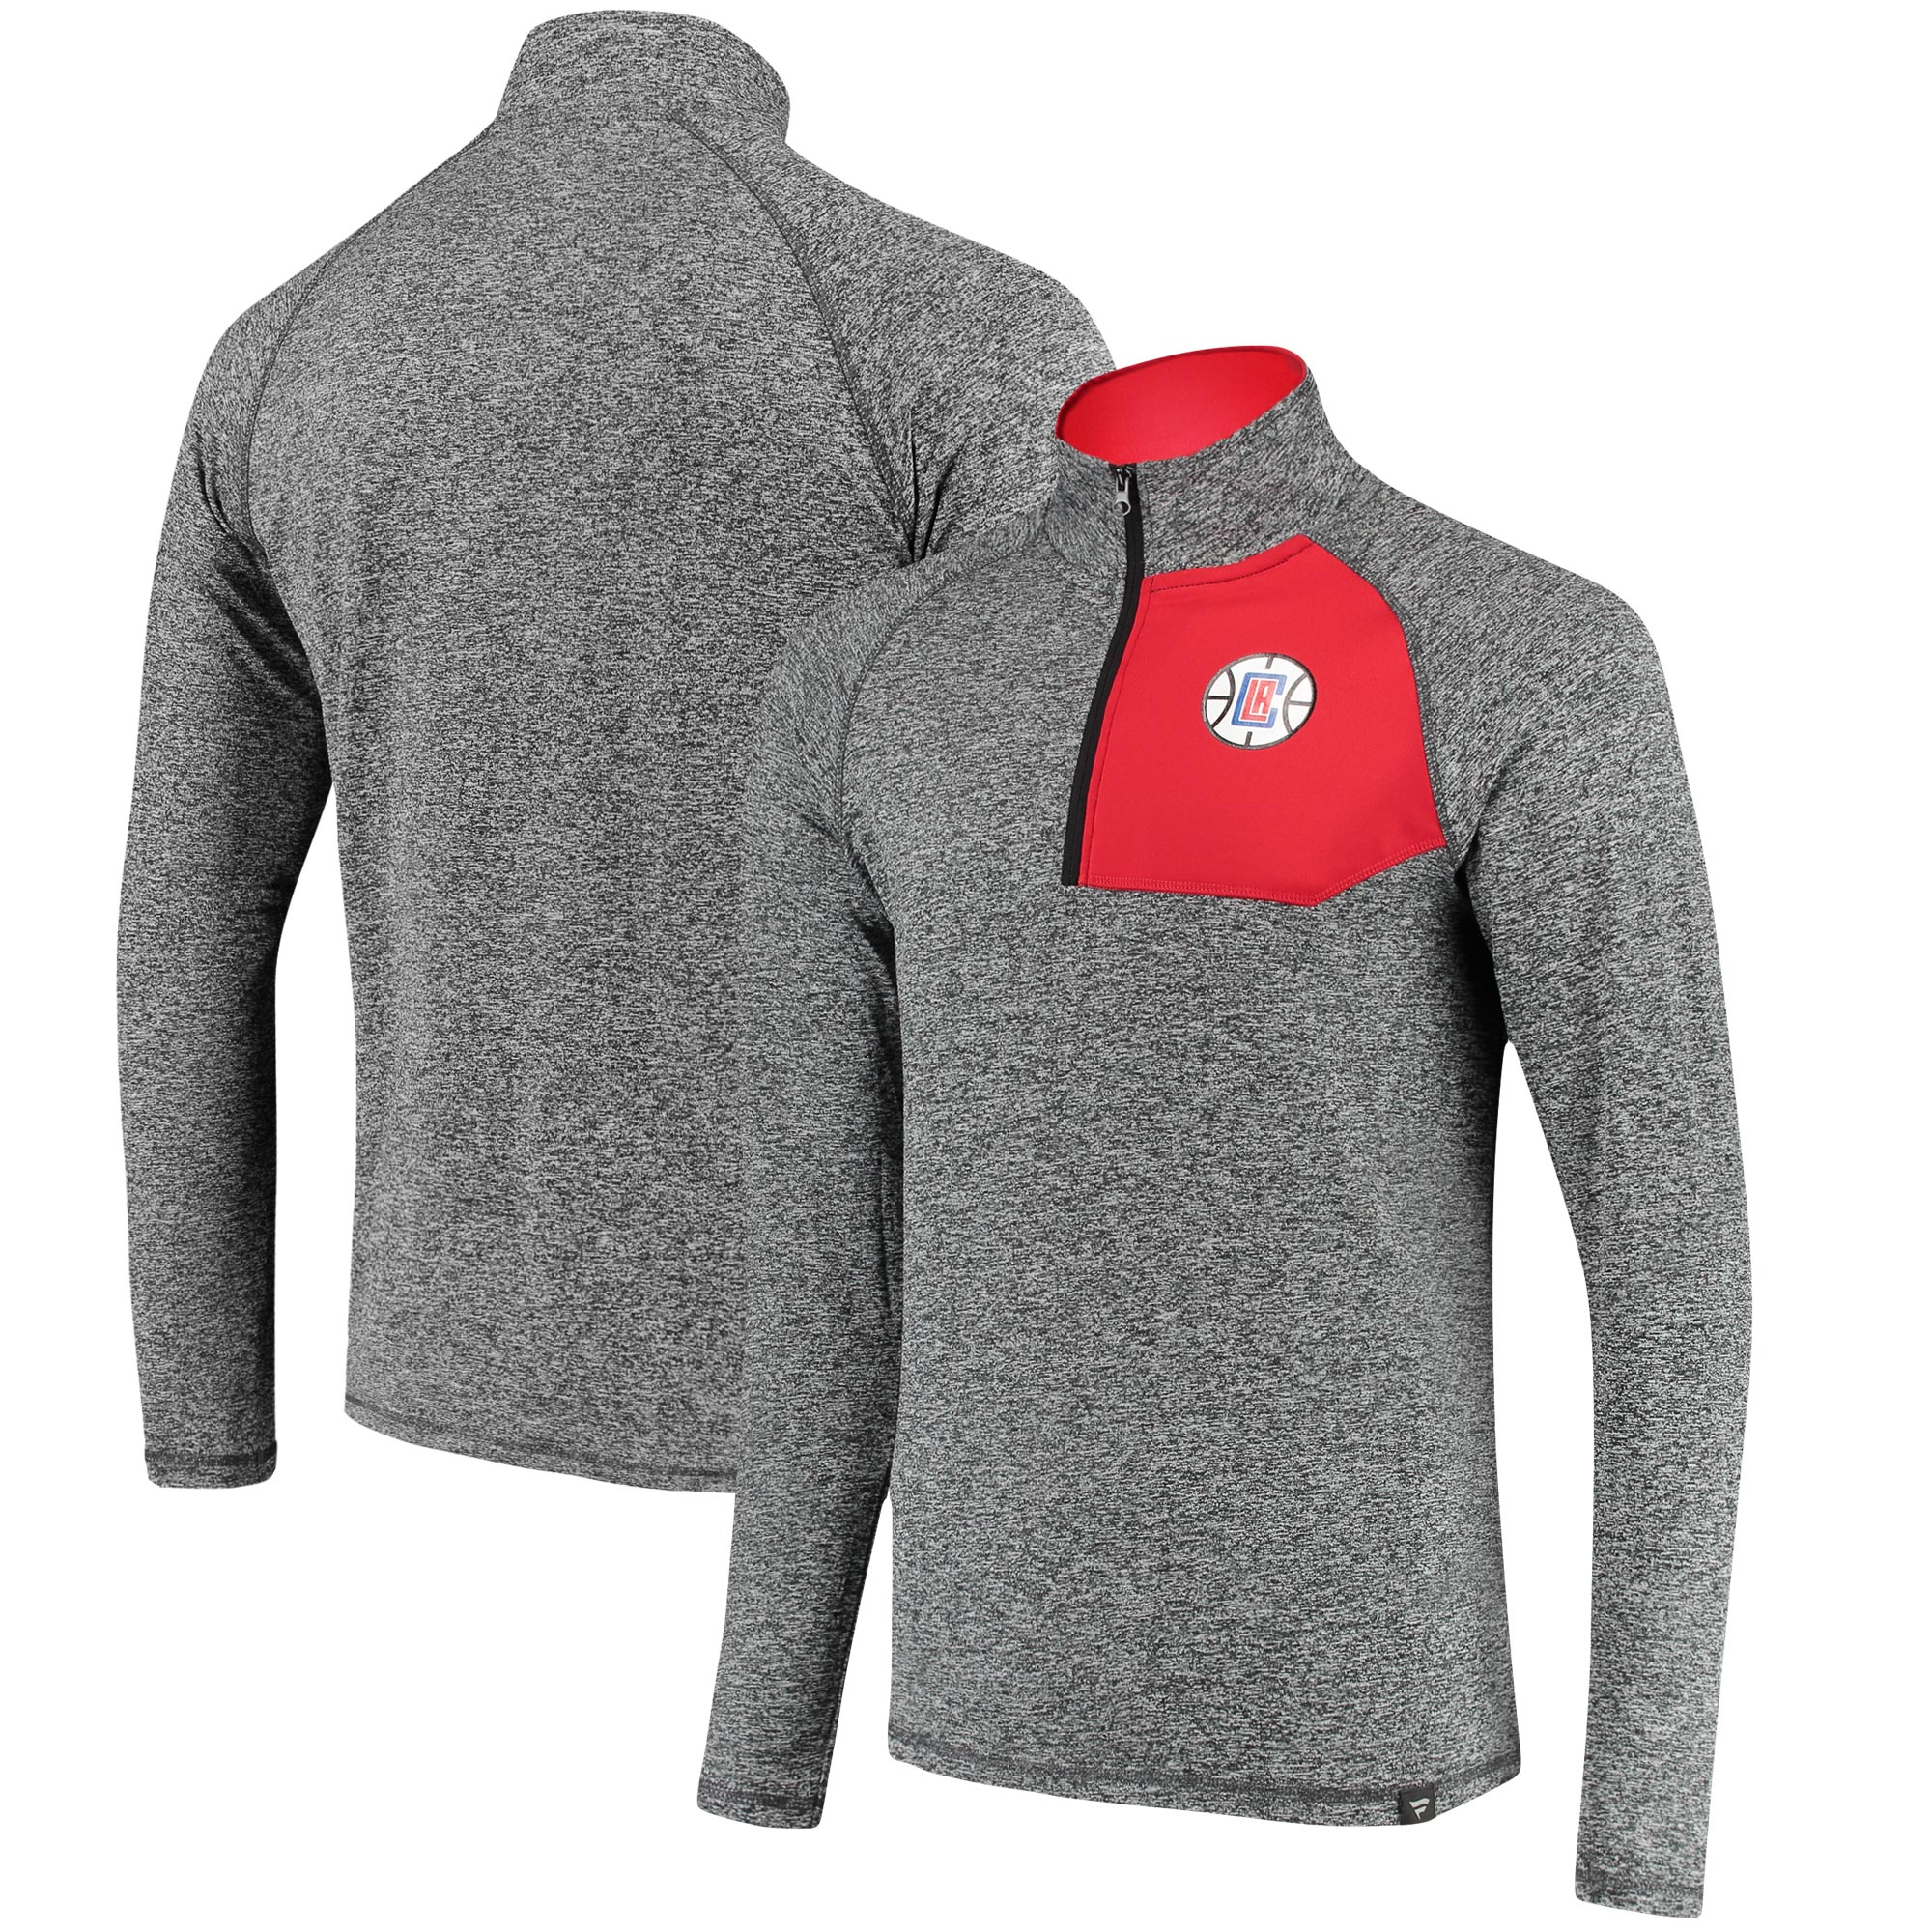 LA Clippers Fanatics Branded Static Quarter-Zip Pullover Jacket - Heathered Charcoal